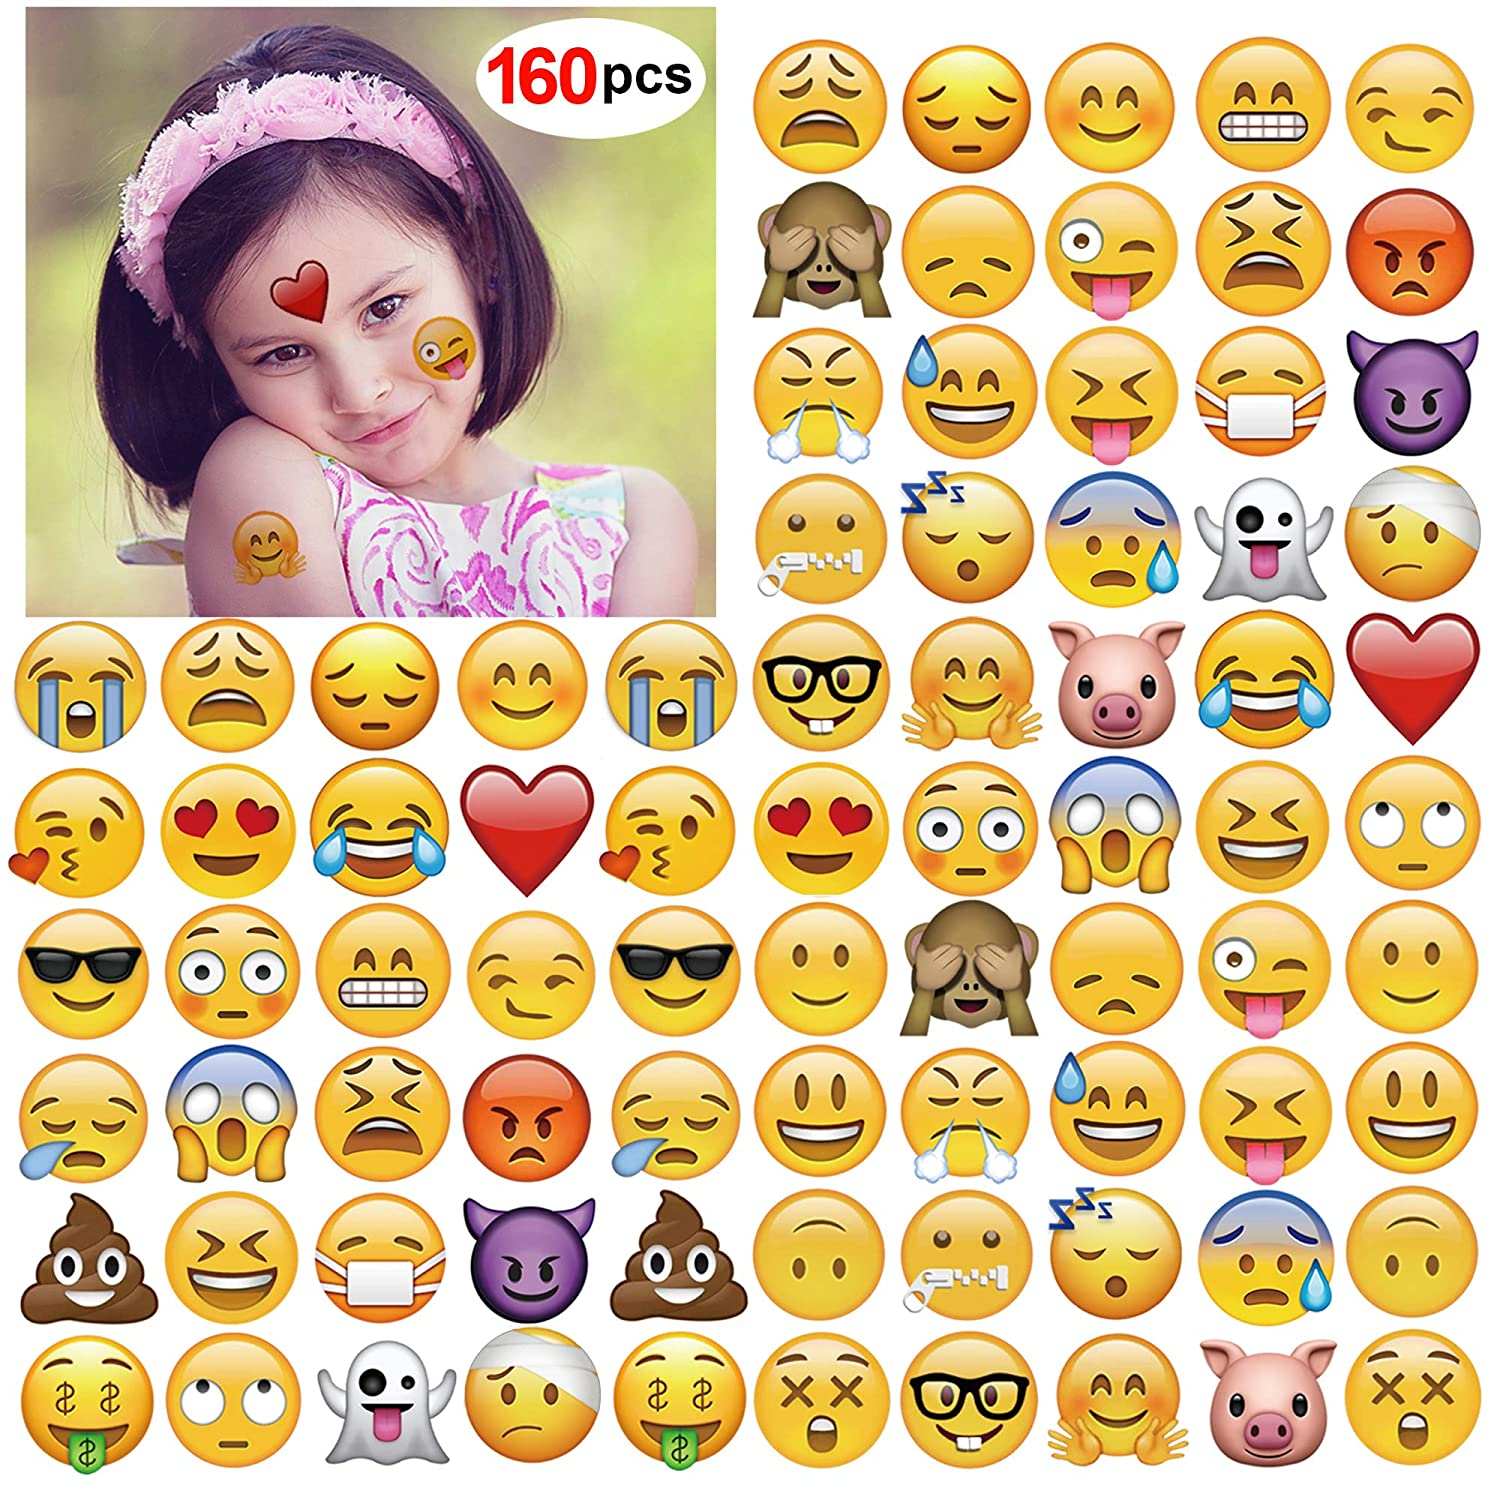 Emoji Temporary Tattoo(160pcs 2inch),Konsait Funny Emoji tattoos Body Stickers for Kids Children Adults for Emoji Party Favors Supplies with Poop Kissing Heart Sunglasses Smirk Relaxed Smile Emoticon